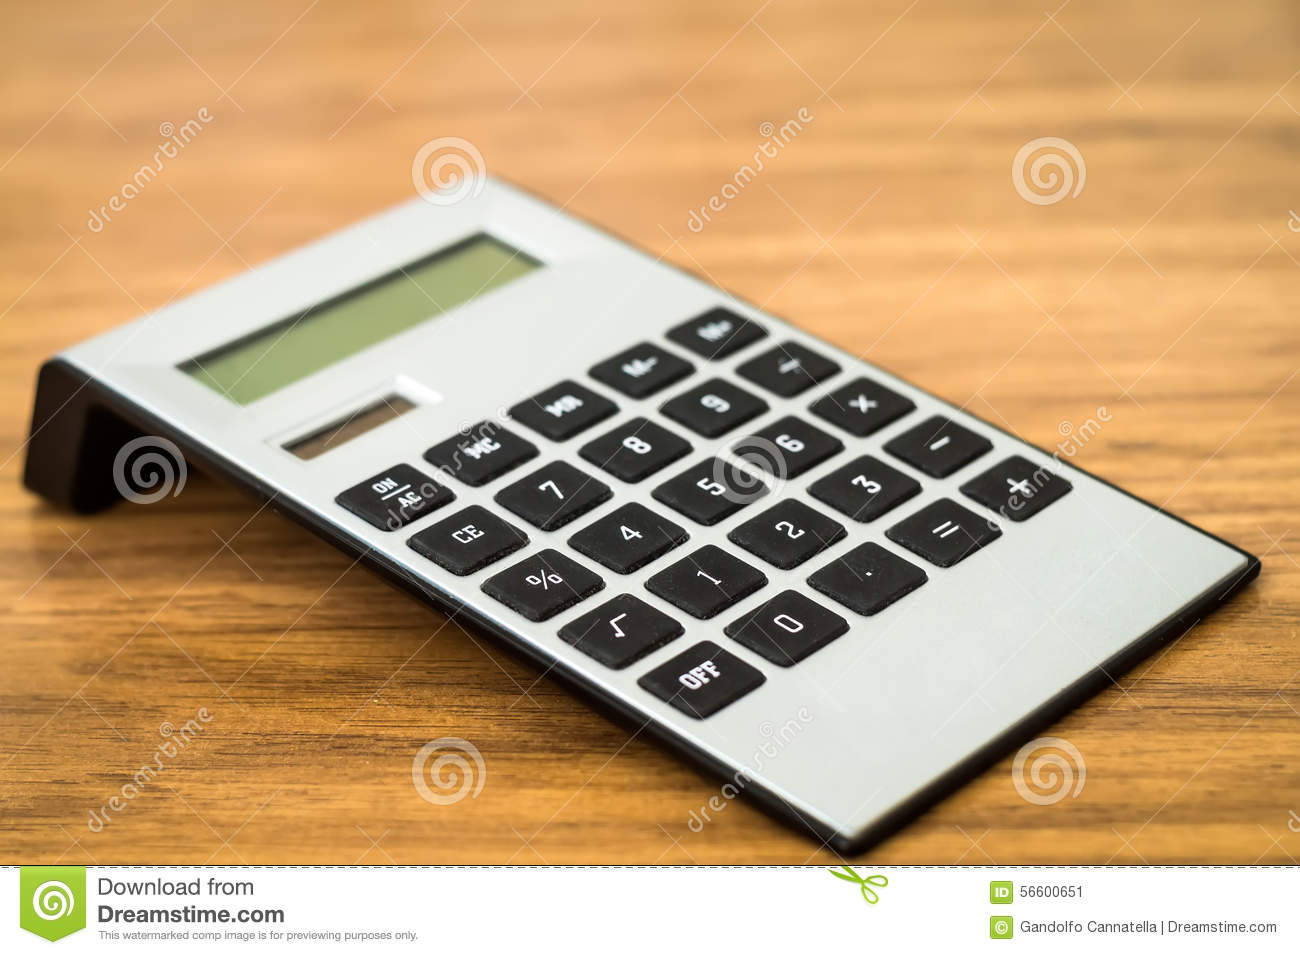 digital calculator on table stock image image of finance closeup